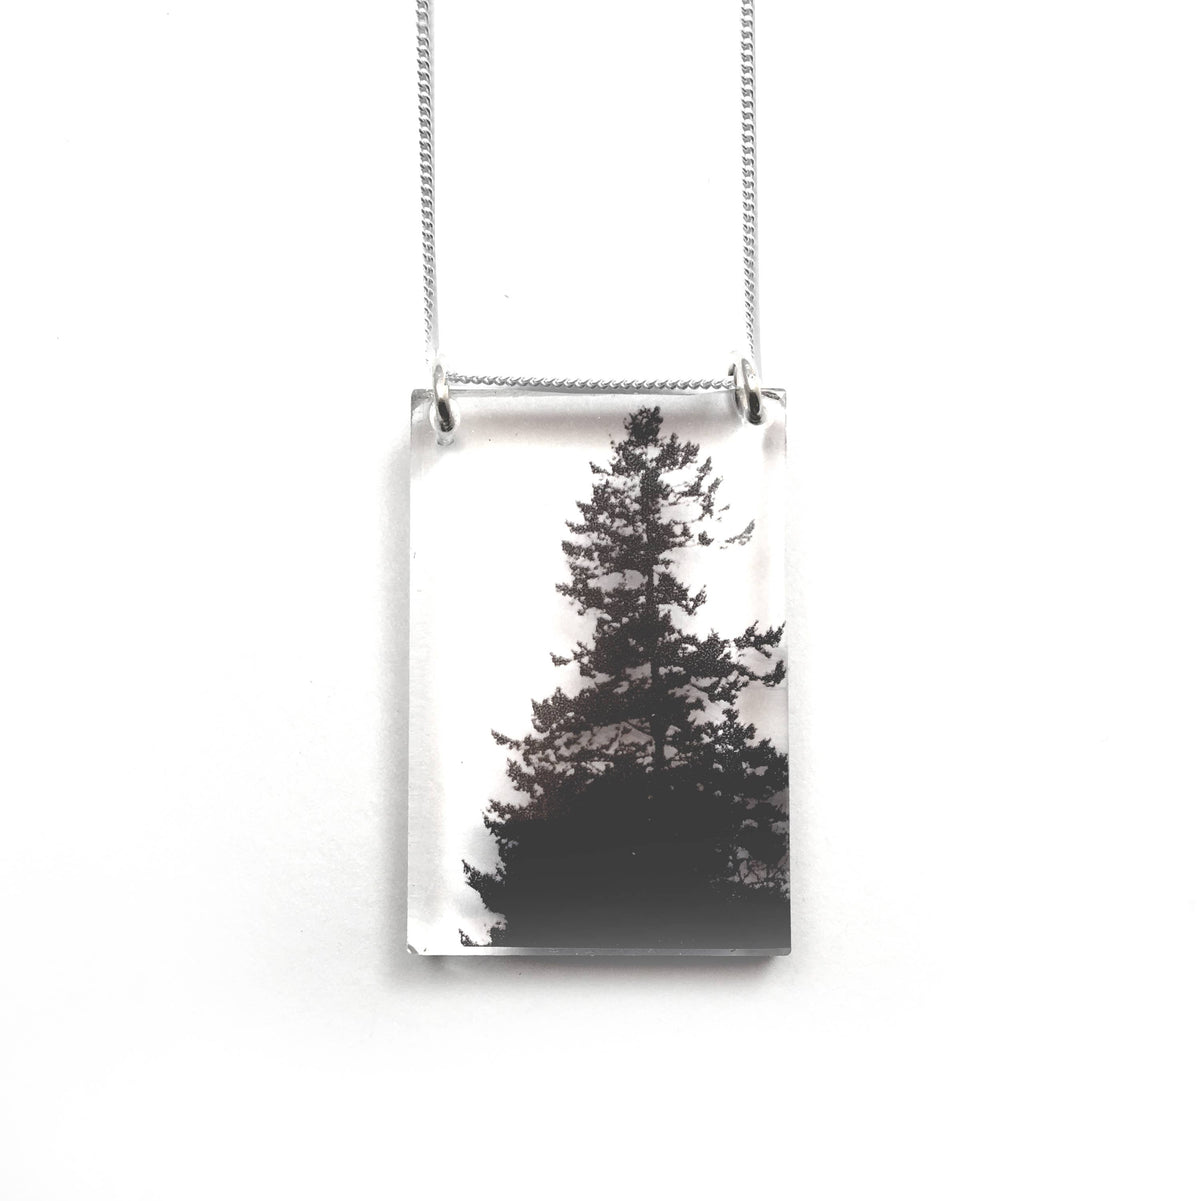 Black Drop Designs - Tall Fir Necklace